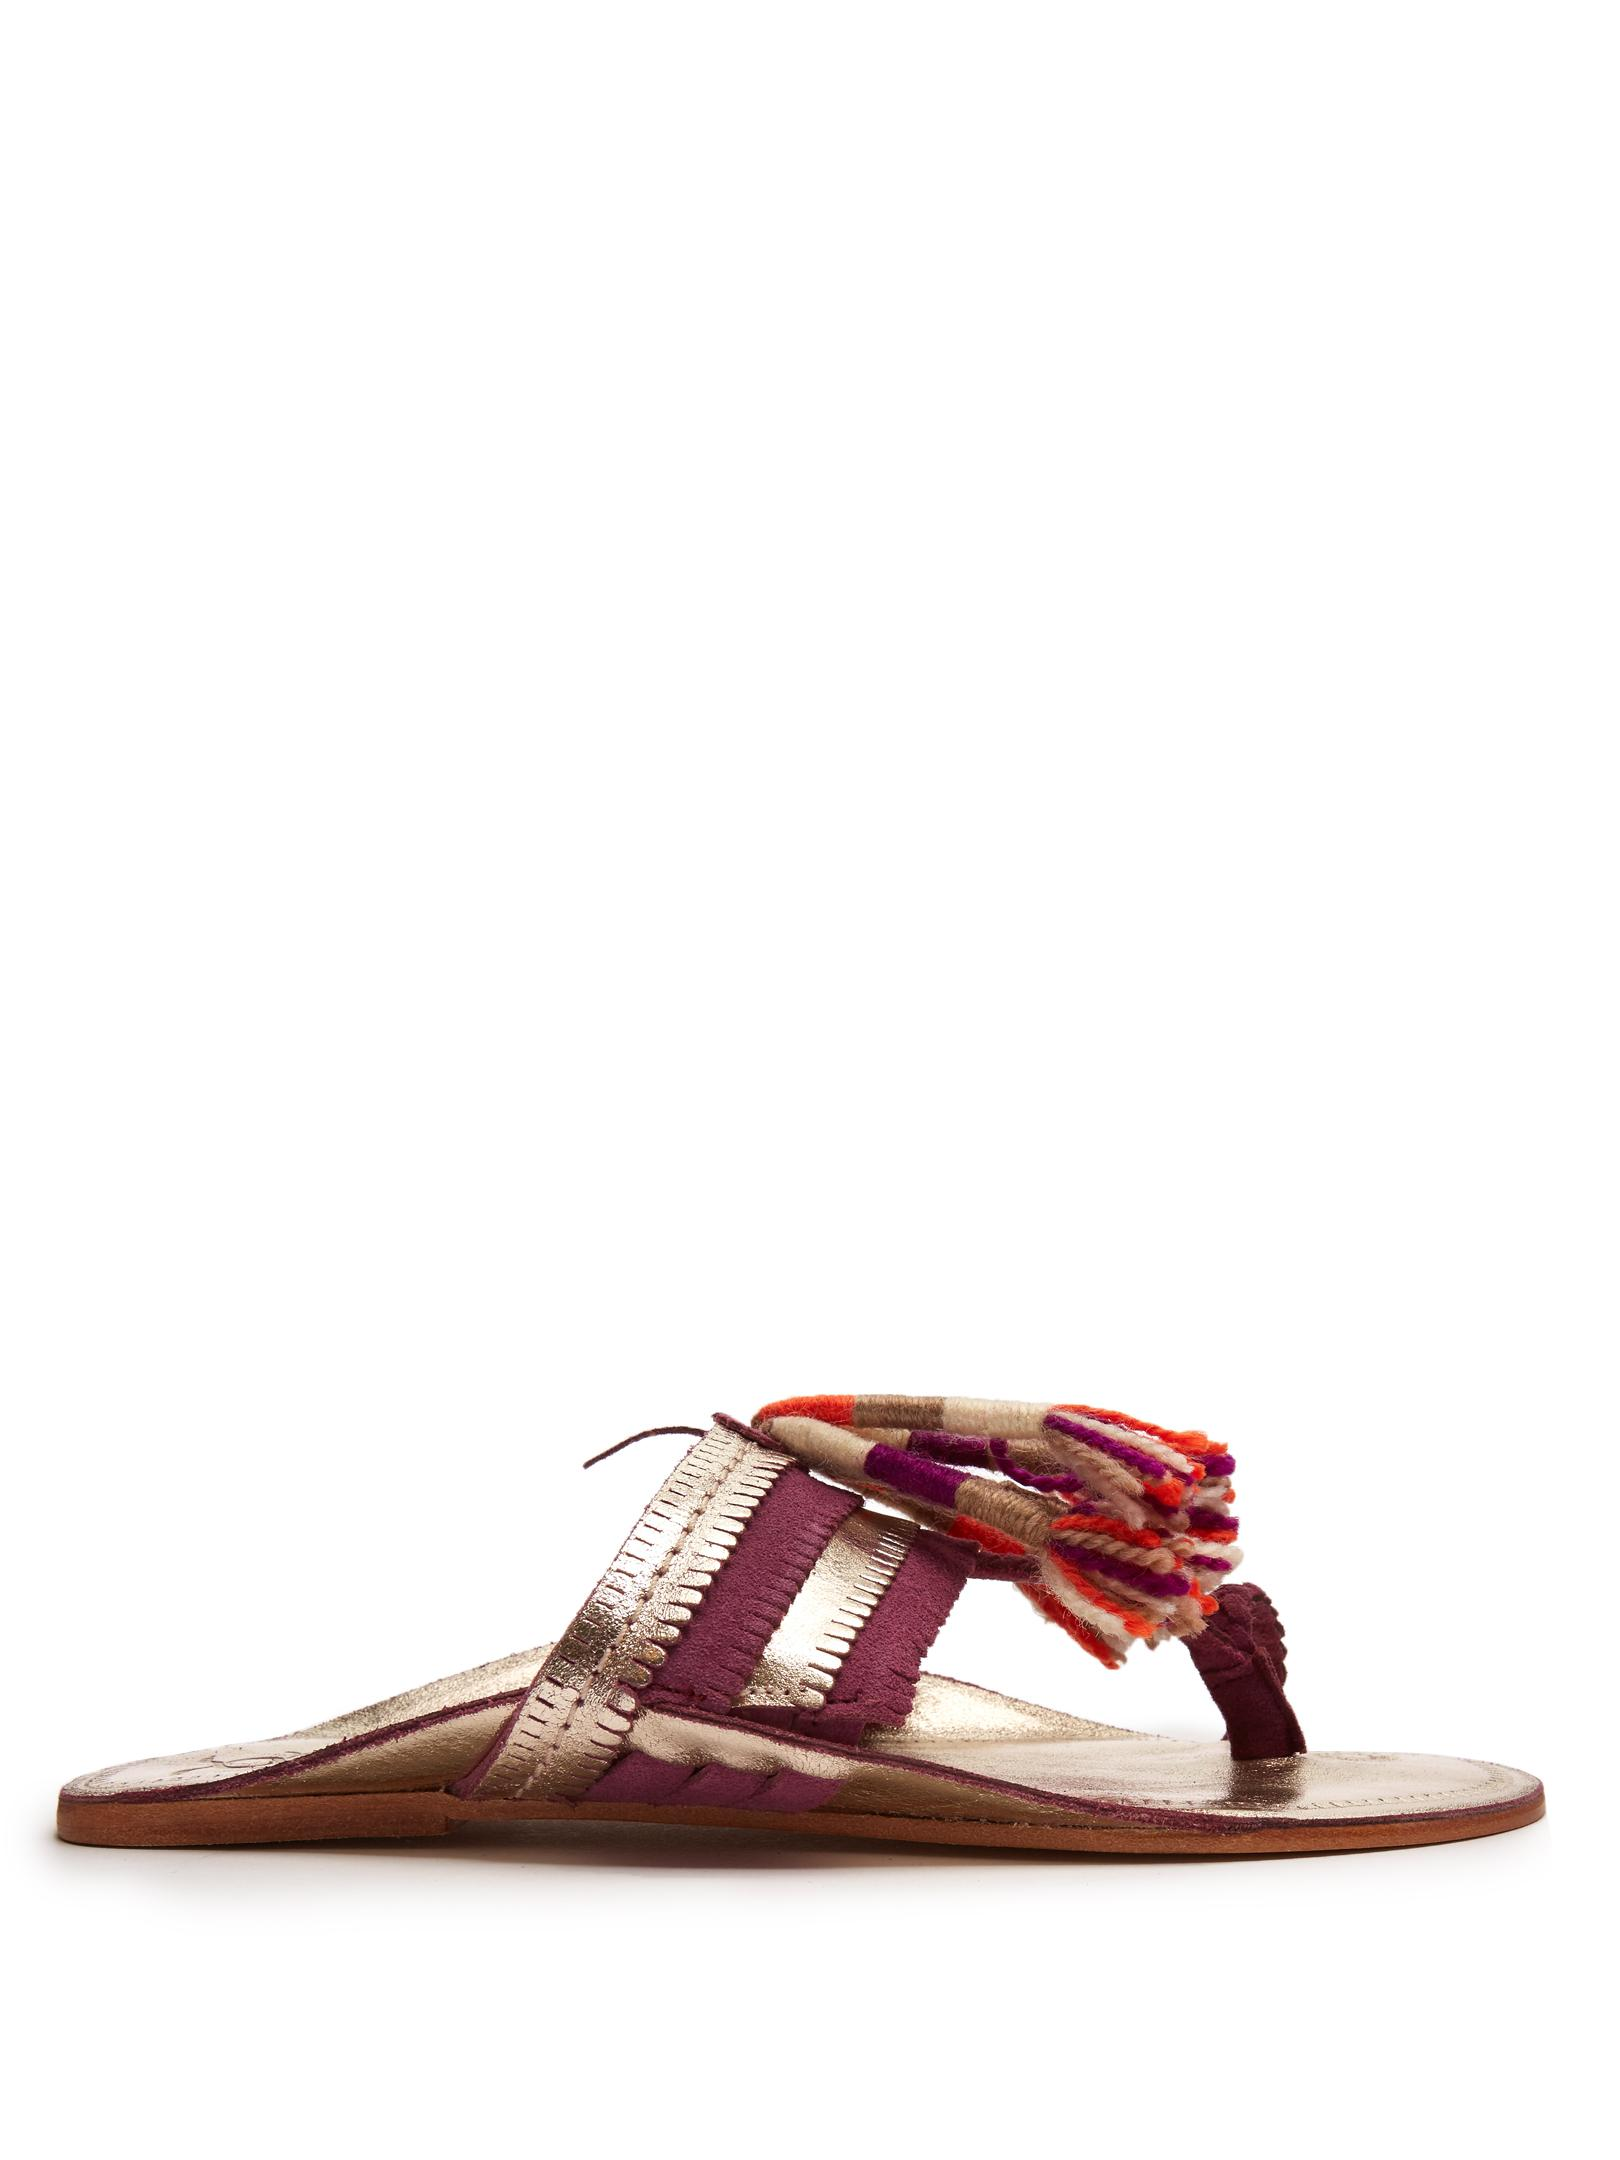 Figue Zola Leather Sandals w/ Tags amazing price explore cheap price sale clearance cheap sale store eaGRC